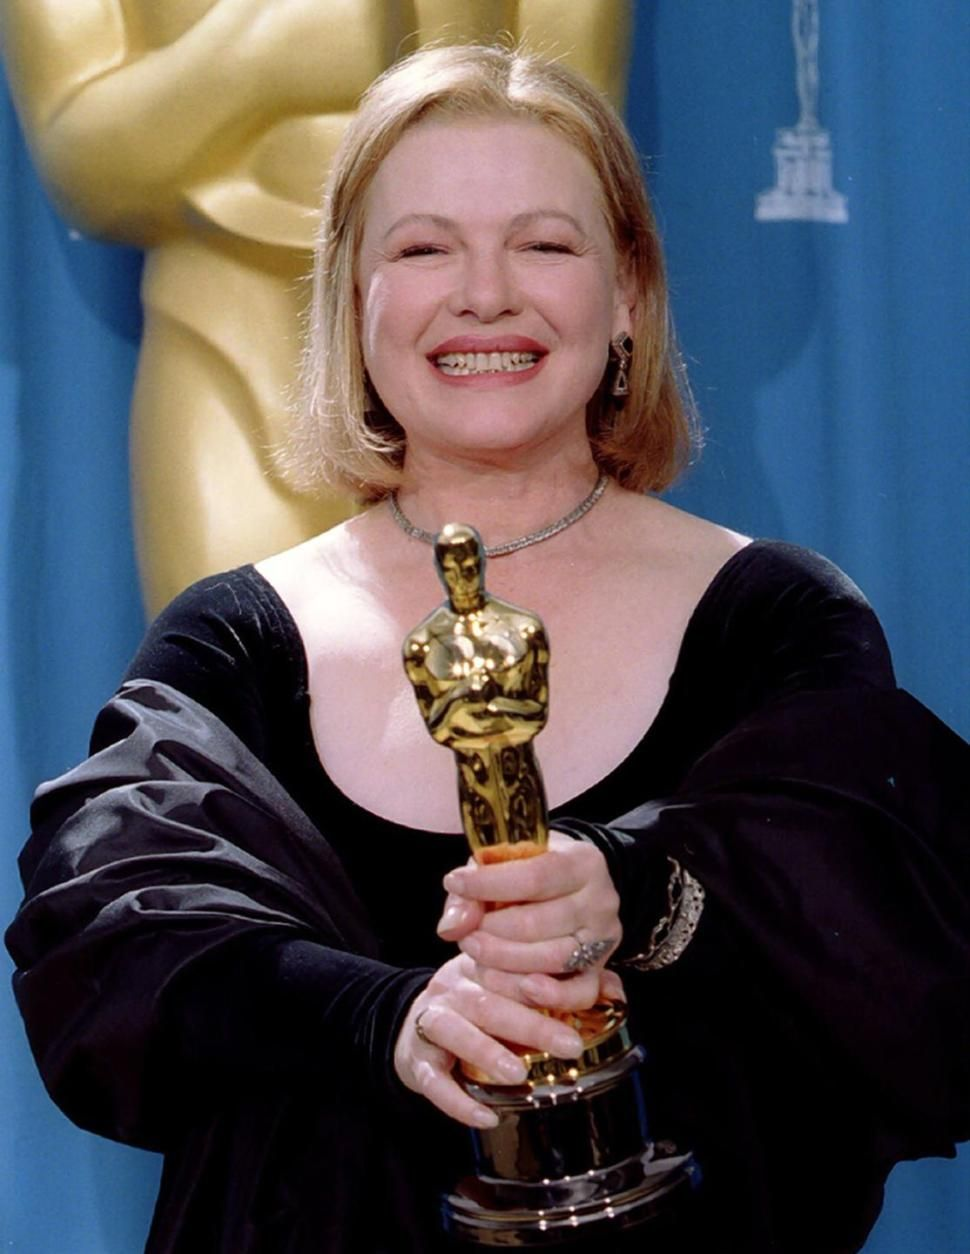 6e03a54b51b953a9b35a2641bb3772bf - Actress Who Won An Oscar For The Constant Gardener